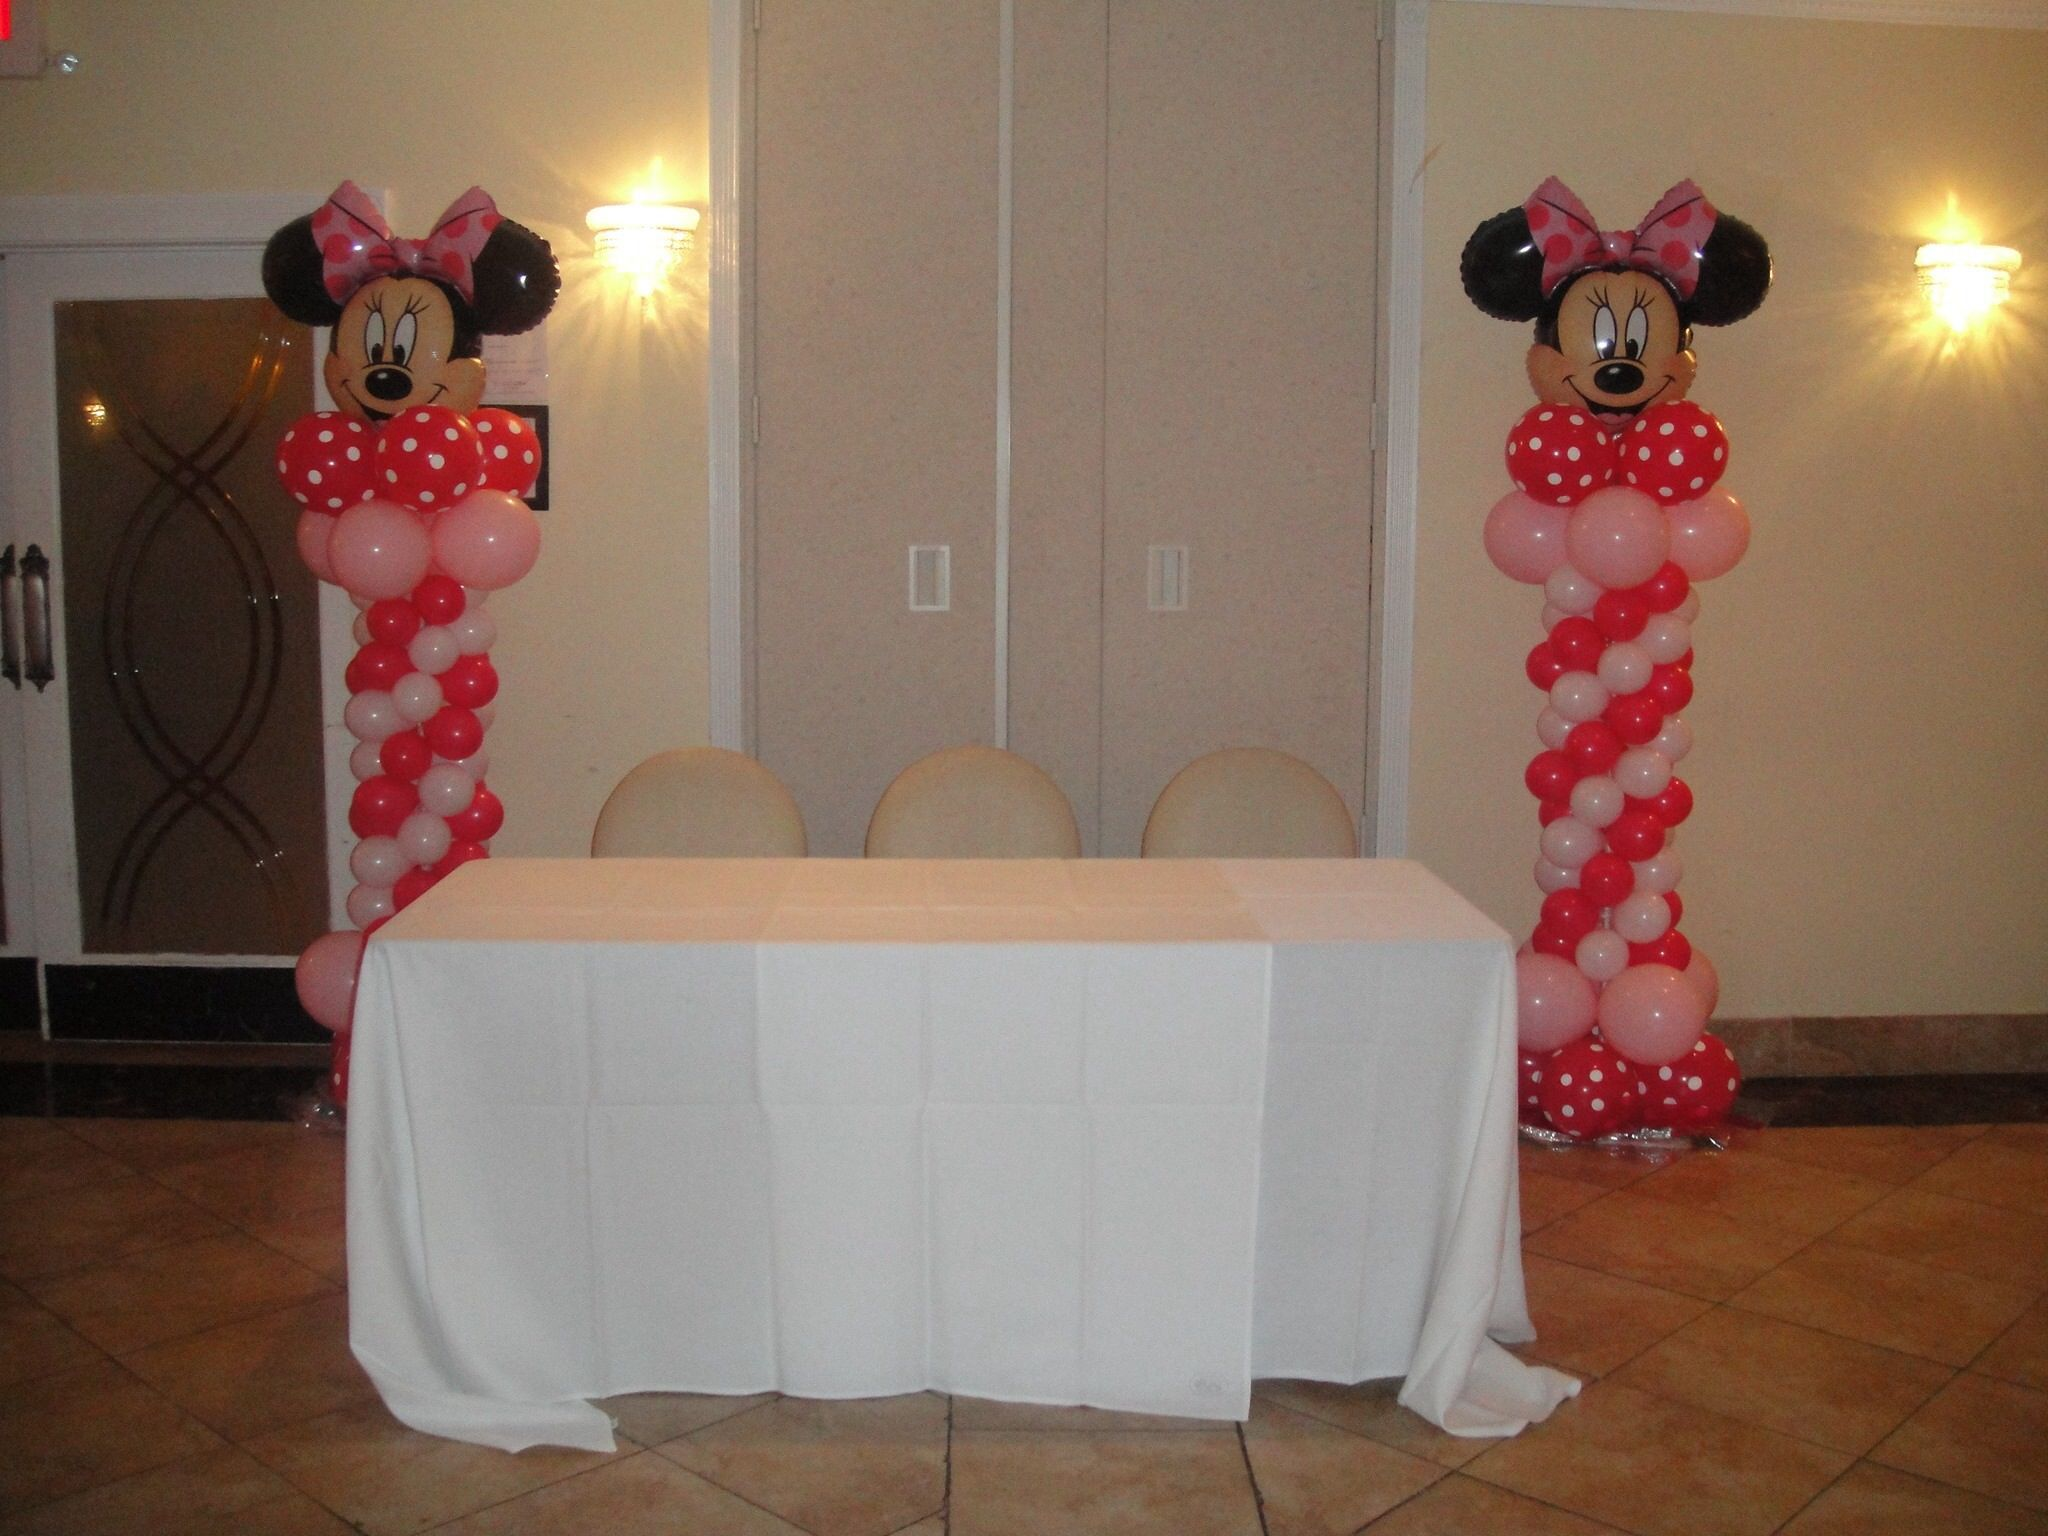 Columns For Decorations 17 Best Images About Balloon Decorations On Pinterest Arches